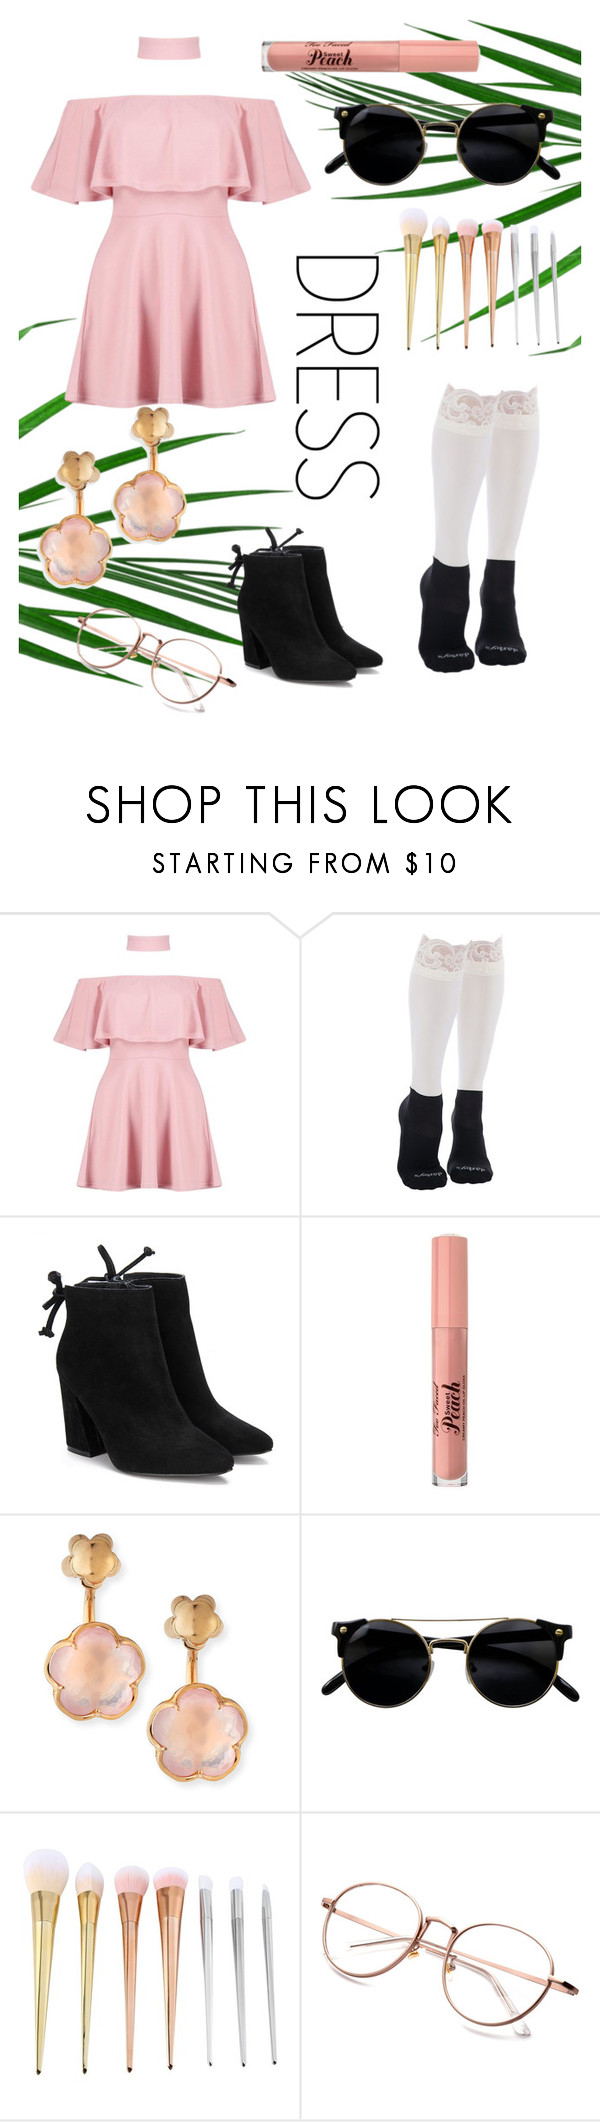 """""""Cold Shoulder ~ Pastel"""" by hipster-euphoria ❤ liked on Polyvore featuring Boohoo, Bootights, Too Faced Cosmetics and Pasquale Bruni"""